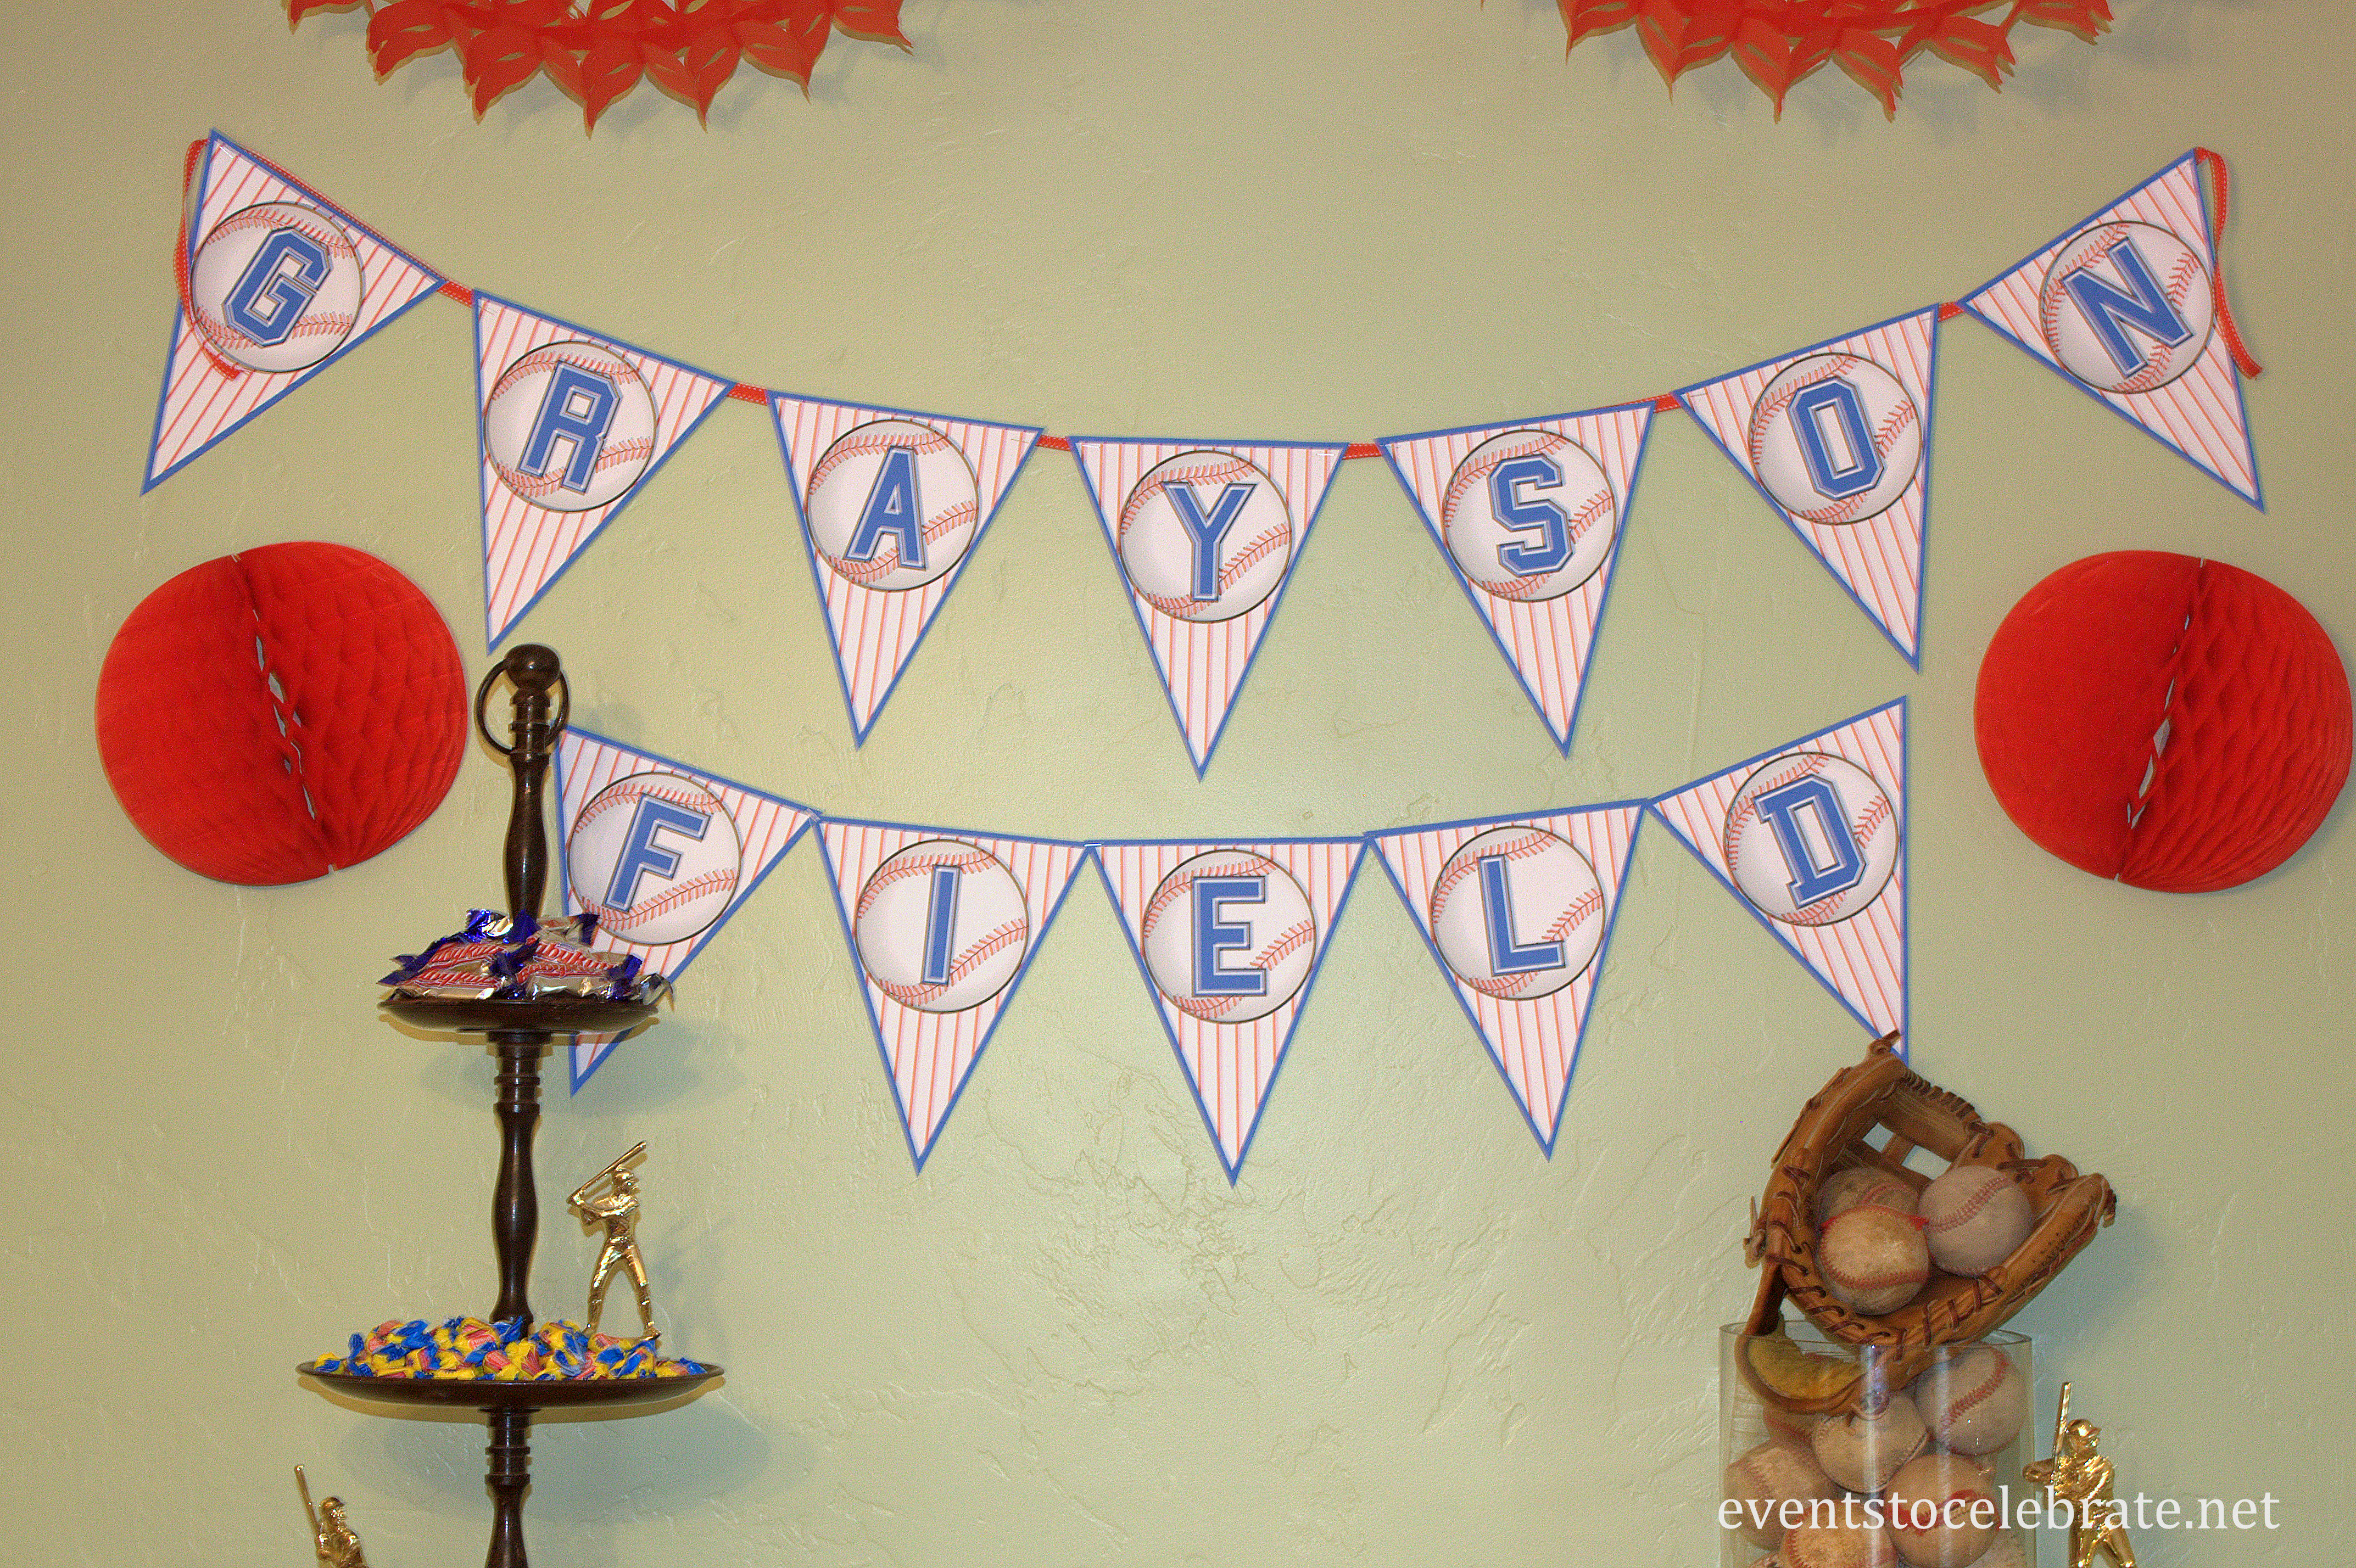 Printable Birthday Decorations Free ~ Baseball birthday party ideas events to celebrate!